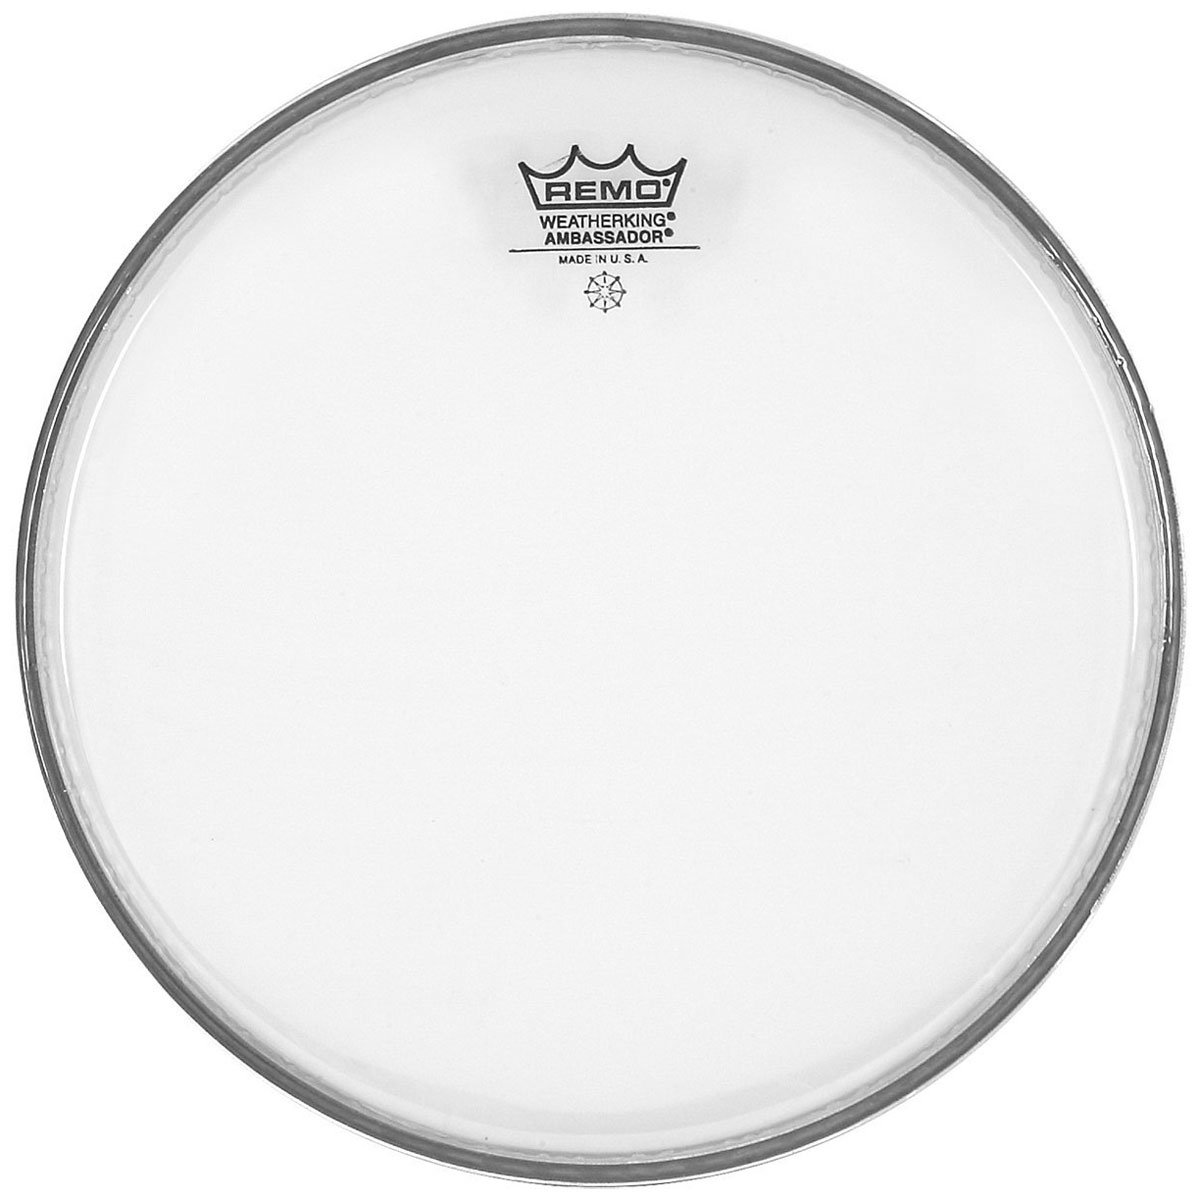 Remo 15 Weather King Ambassador Snare